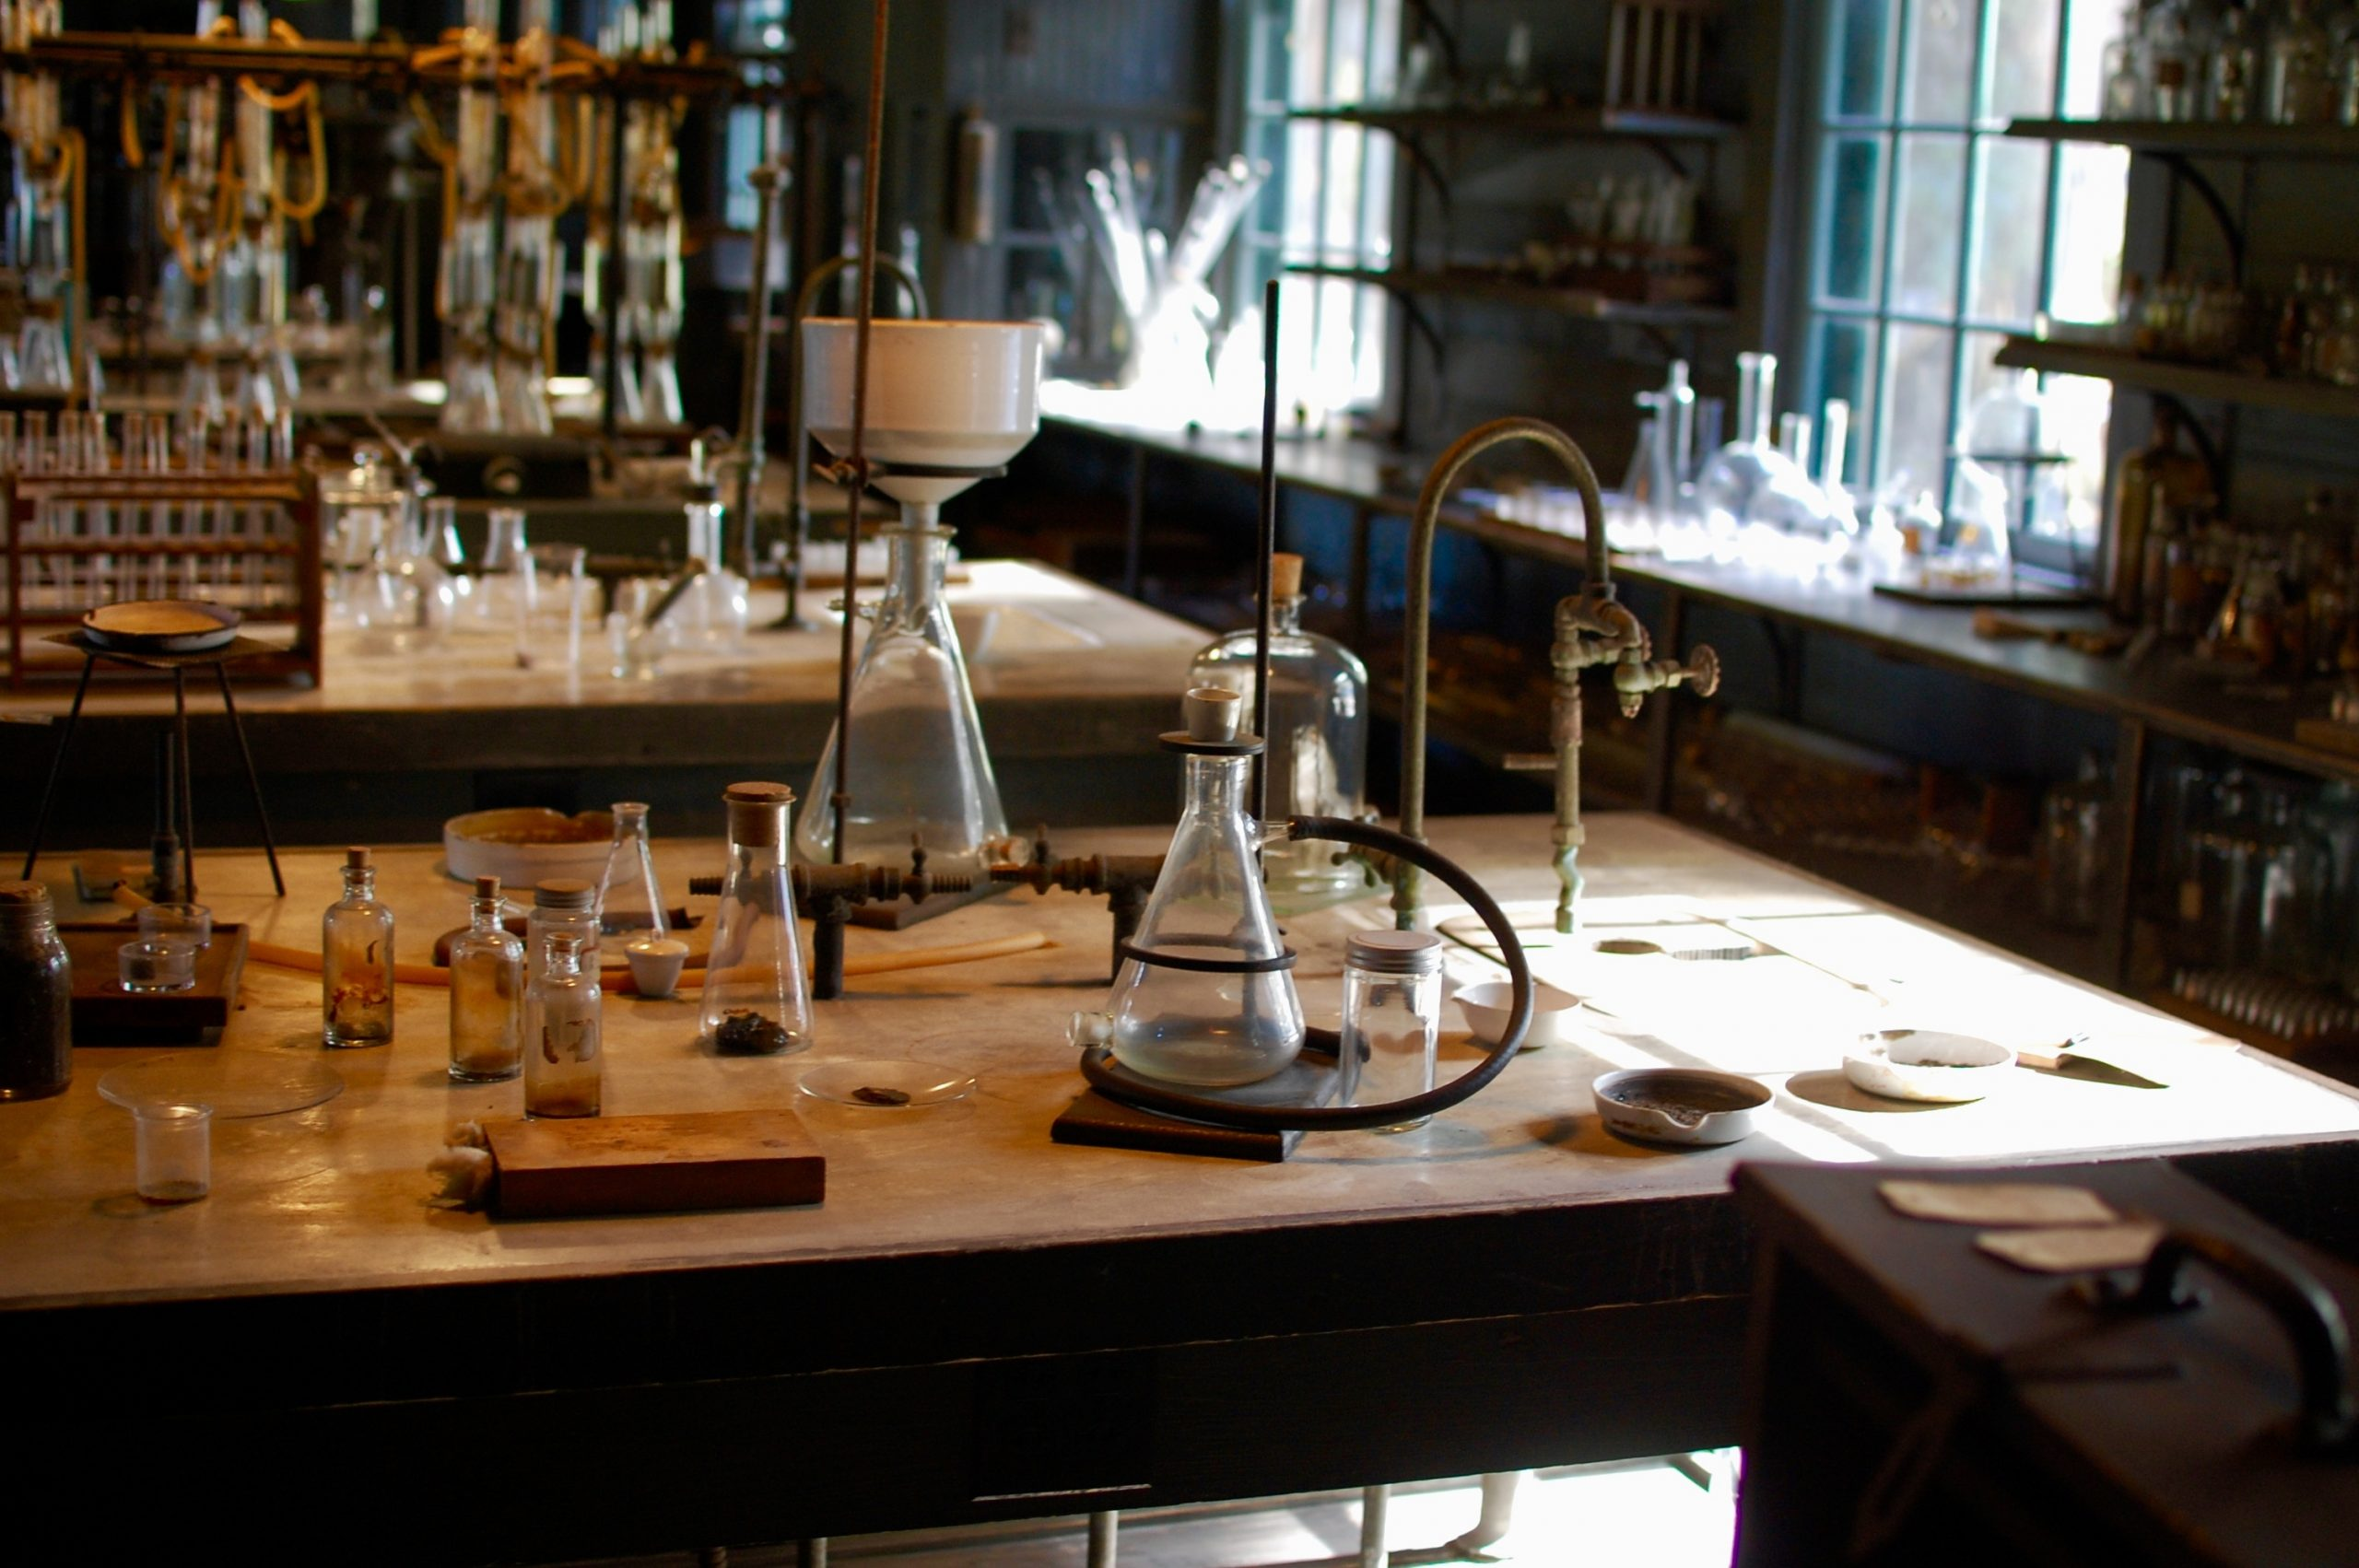 Edison lab work station